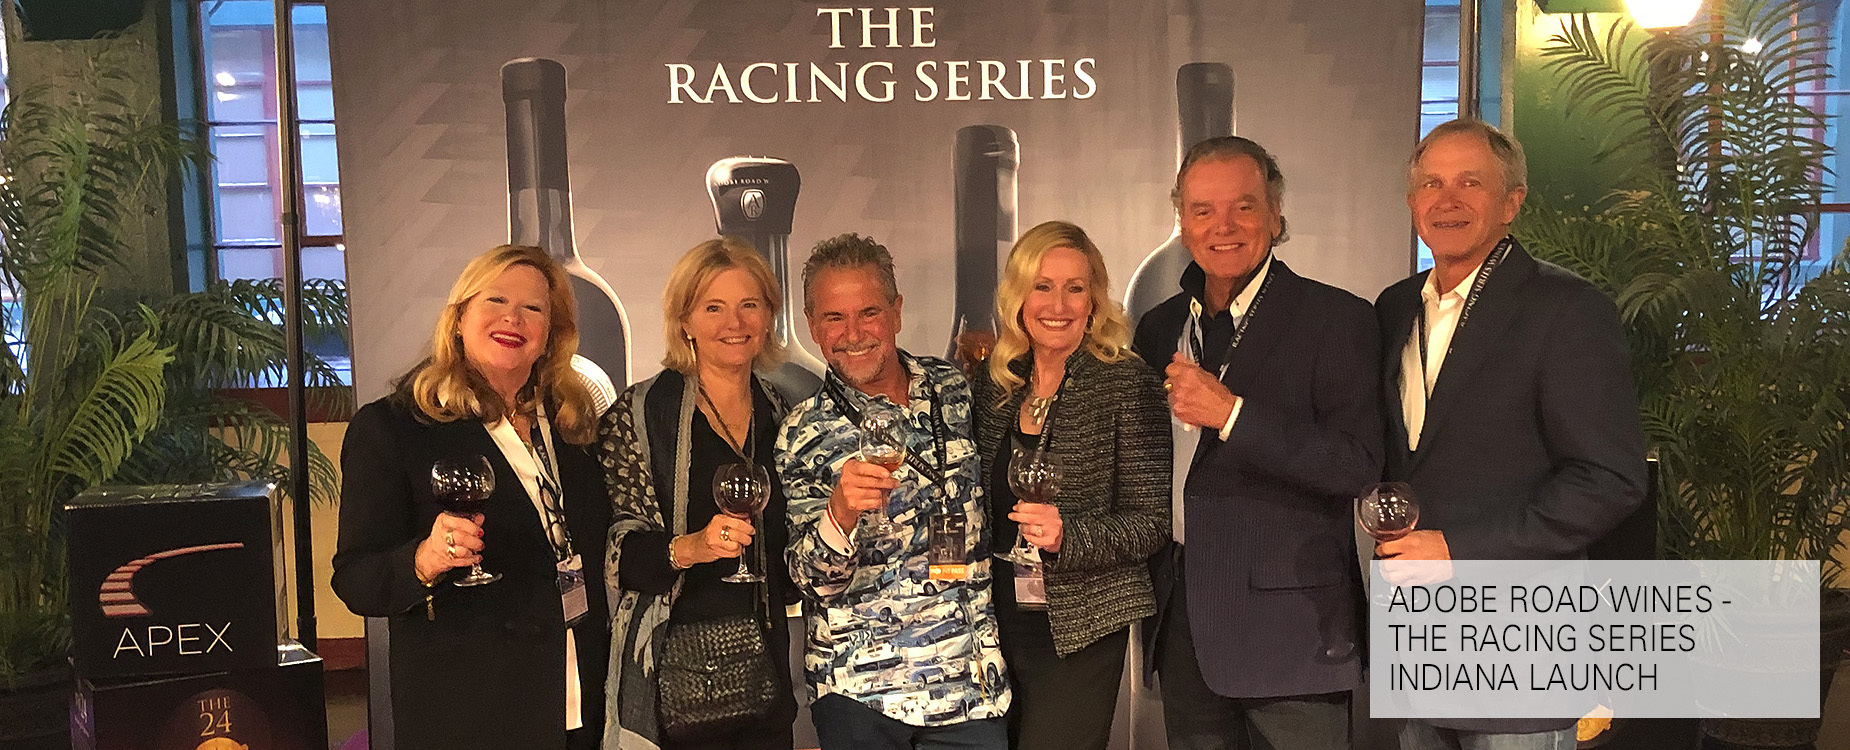 Adobe Road Wines - The Racing Series Indiana Launch